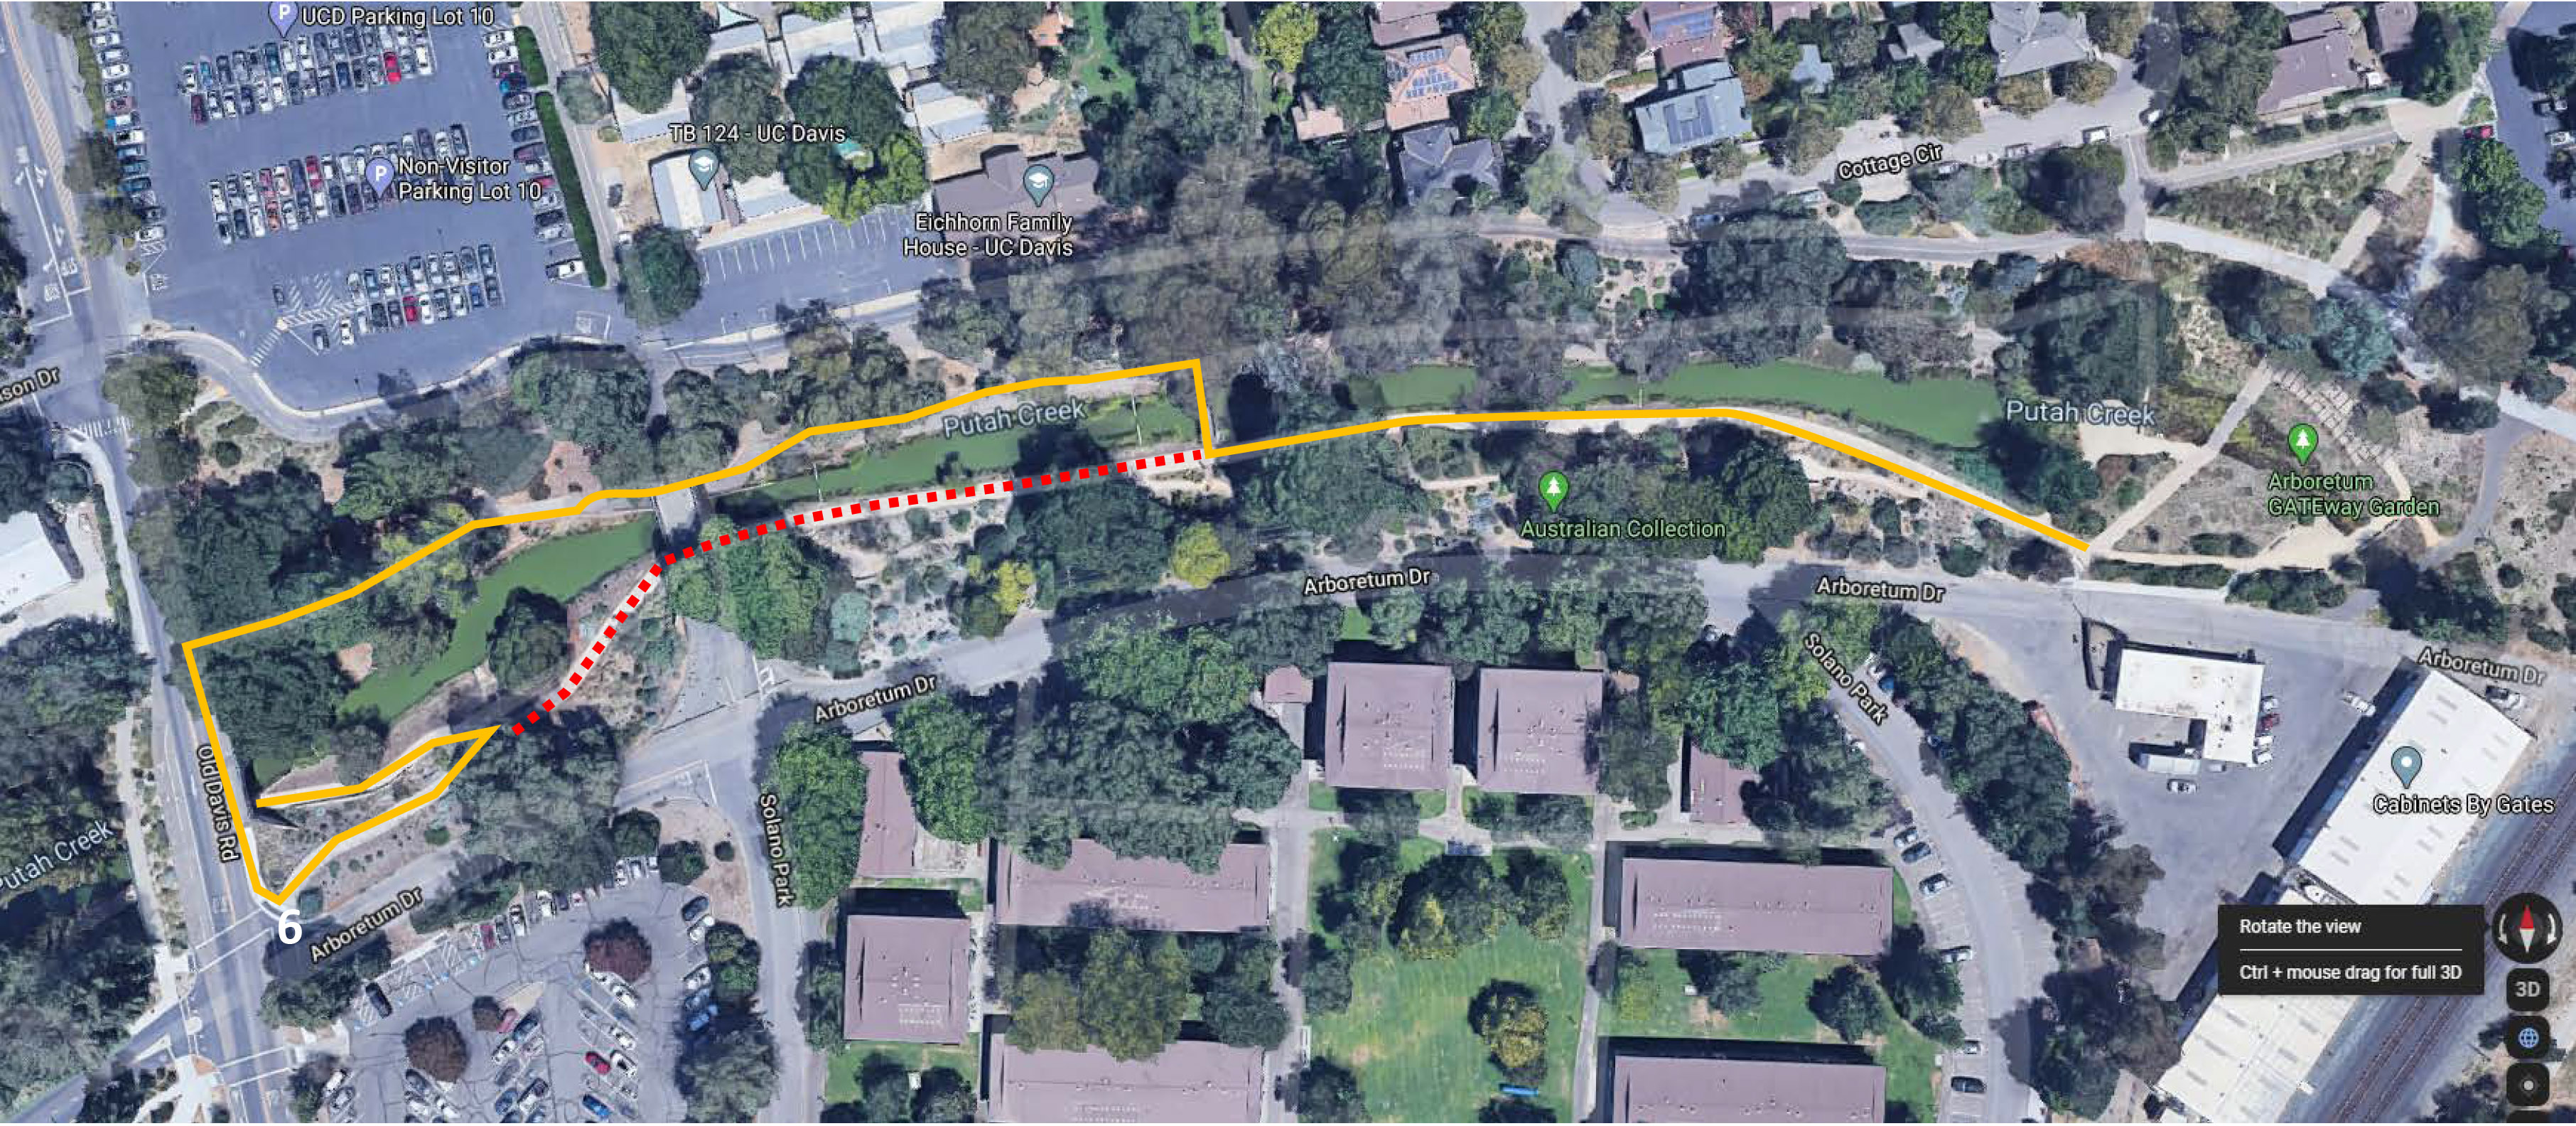 Path closure and detour on south side of bridge